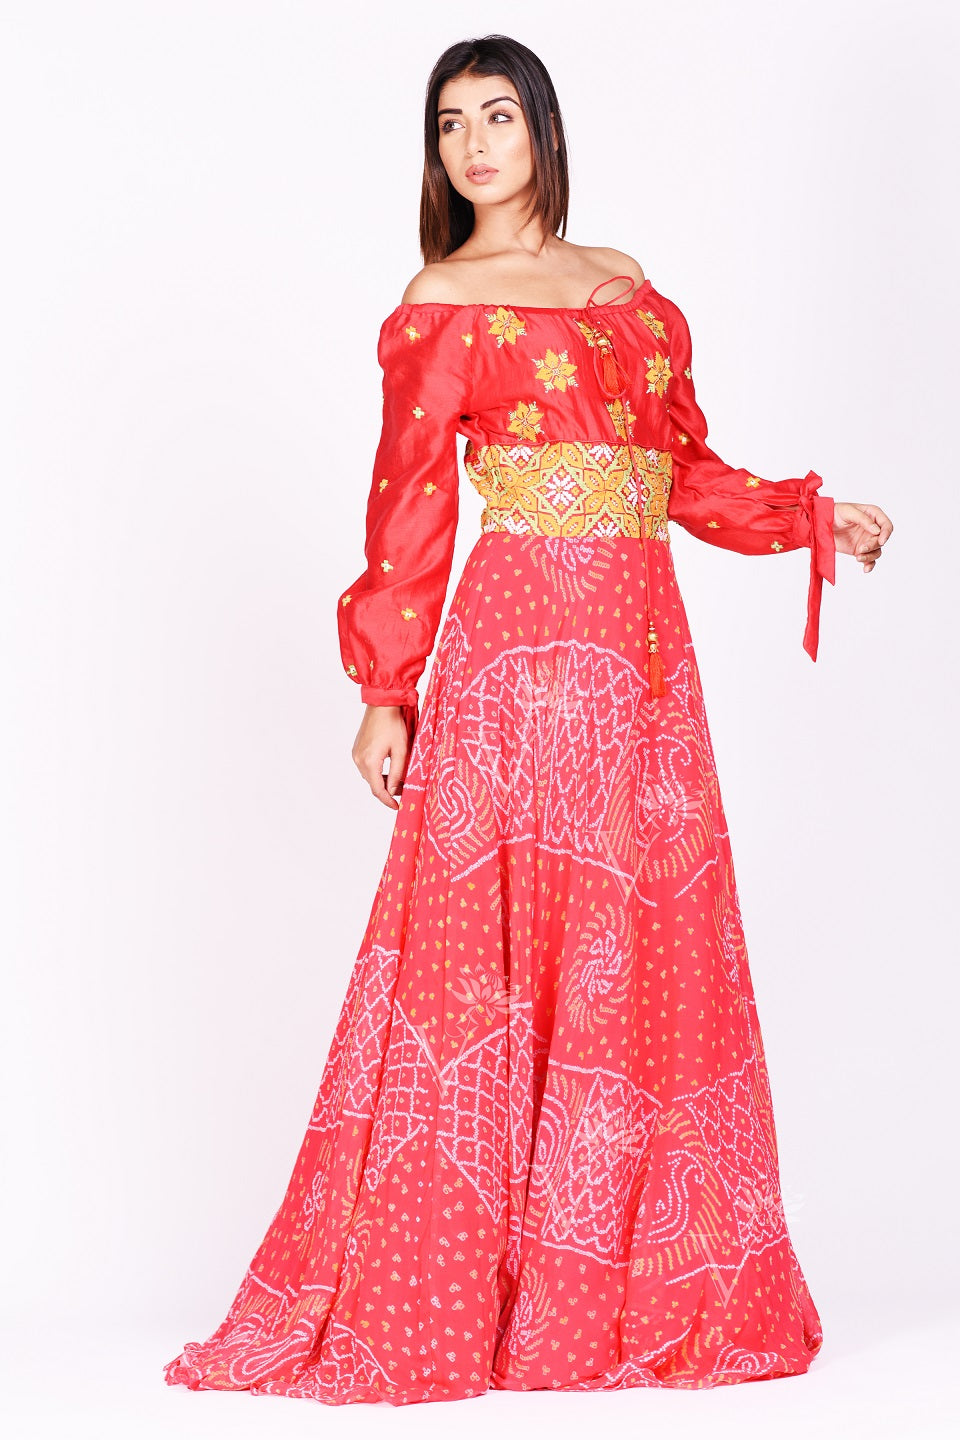 Shop stunning red printed off-shoulder georgettte gown online in USA. Make a stunning fashion statement at weddings and special occasions with an exquisite collection of designer Anarkali suits, traditional salwar suits, Indian designer dresses from Pure Elegance Indian fashion store in USA. -full view